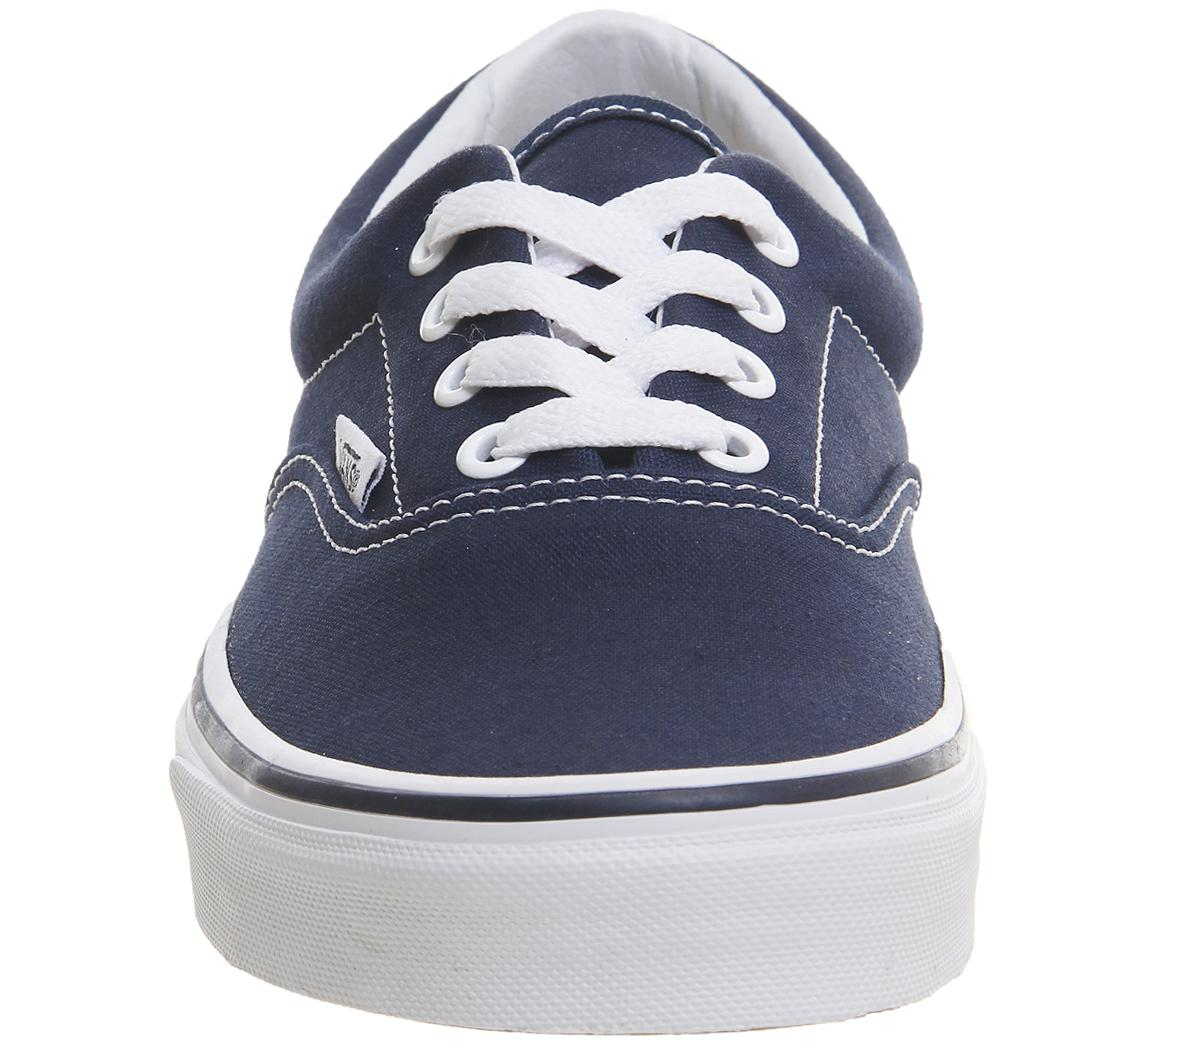 Vans Canvas Authentic Trainers in Navy (Blue) for Men